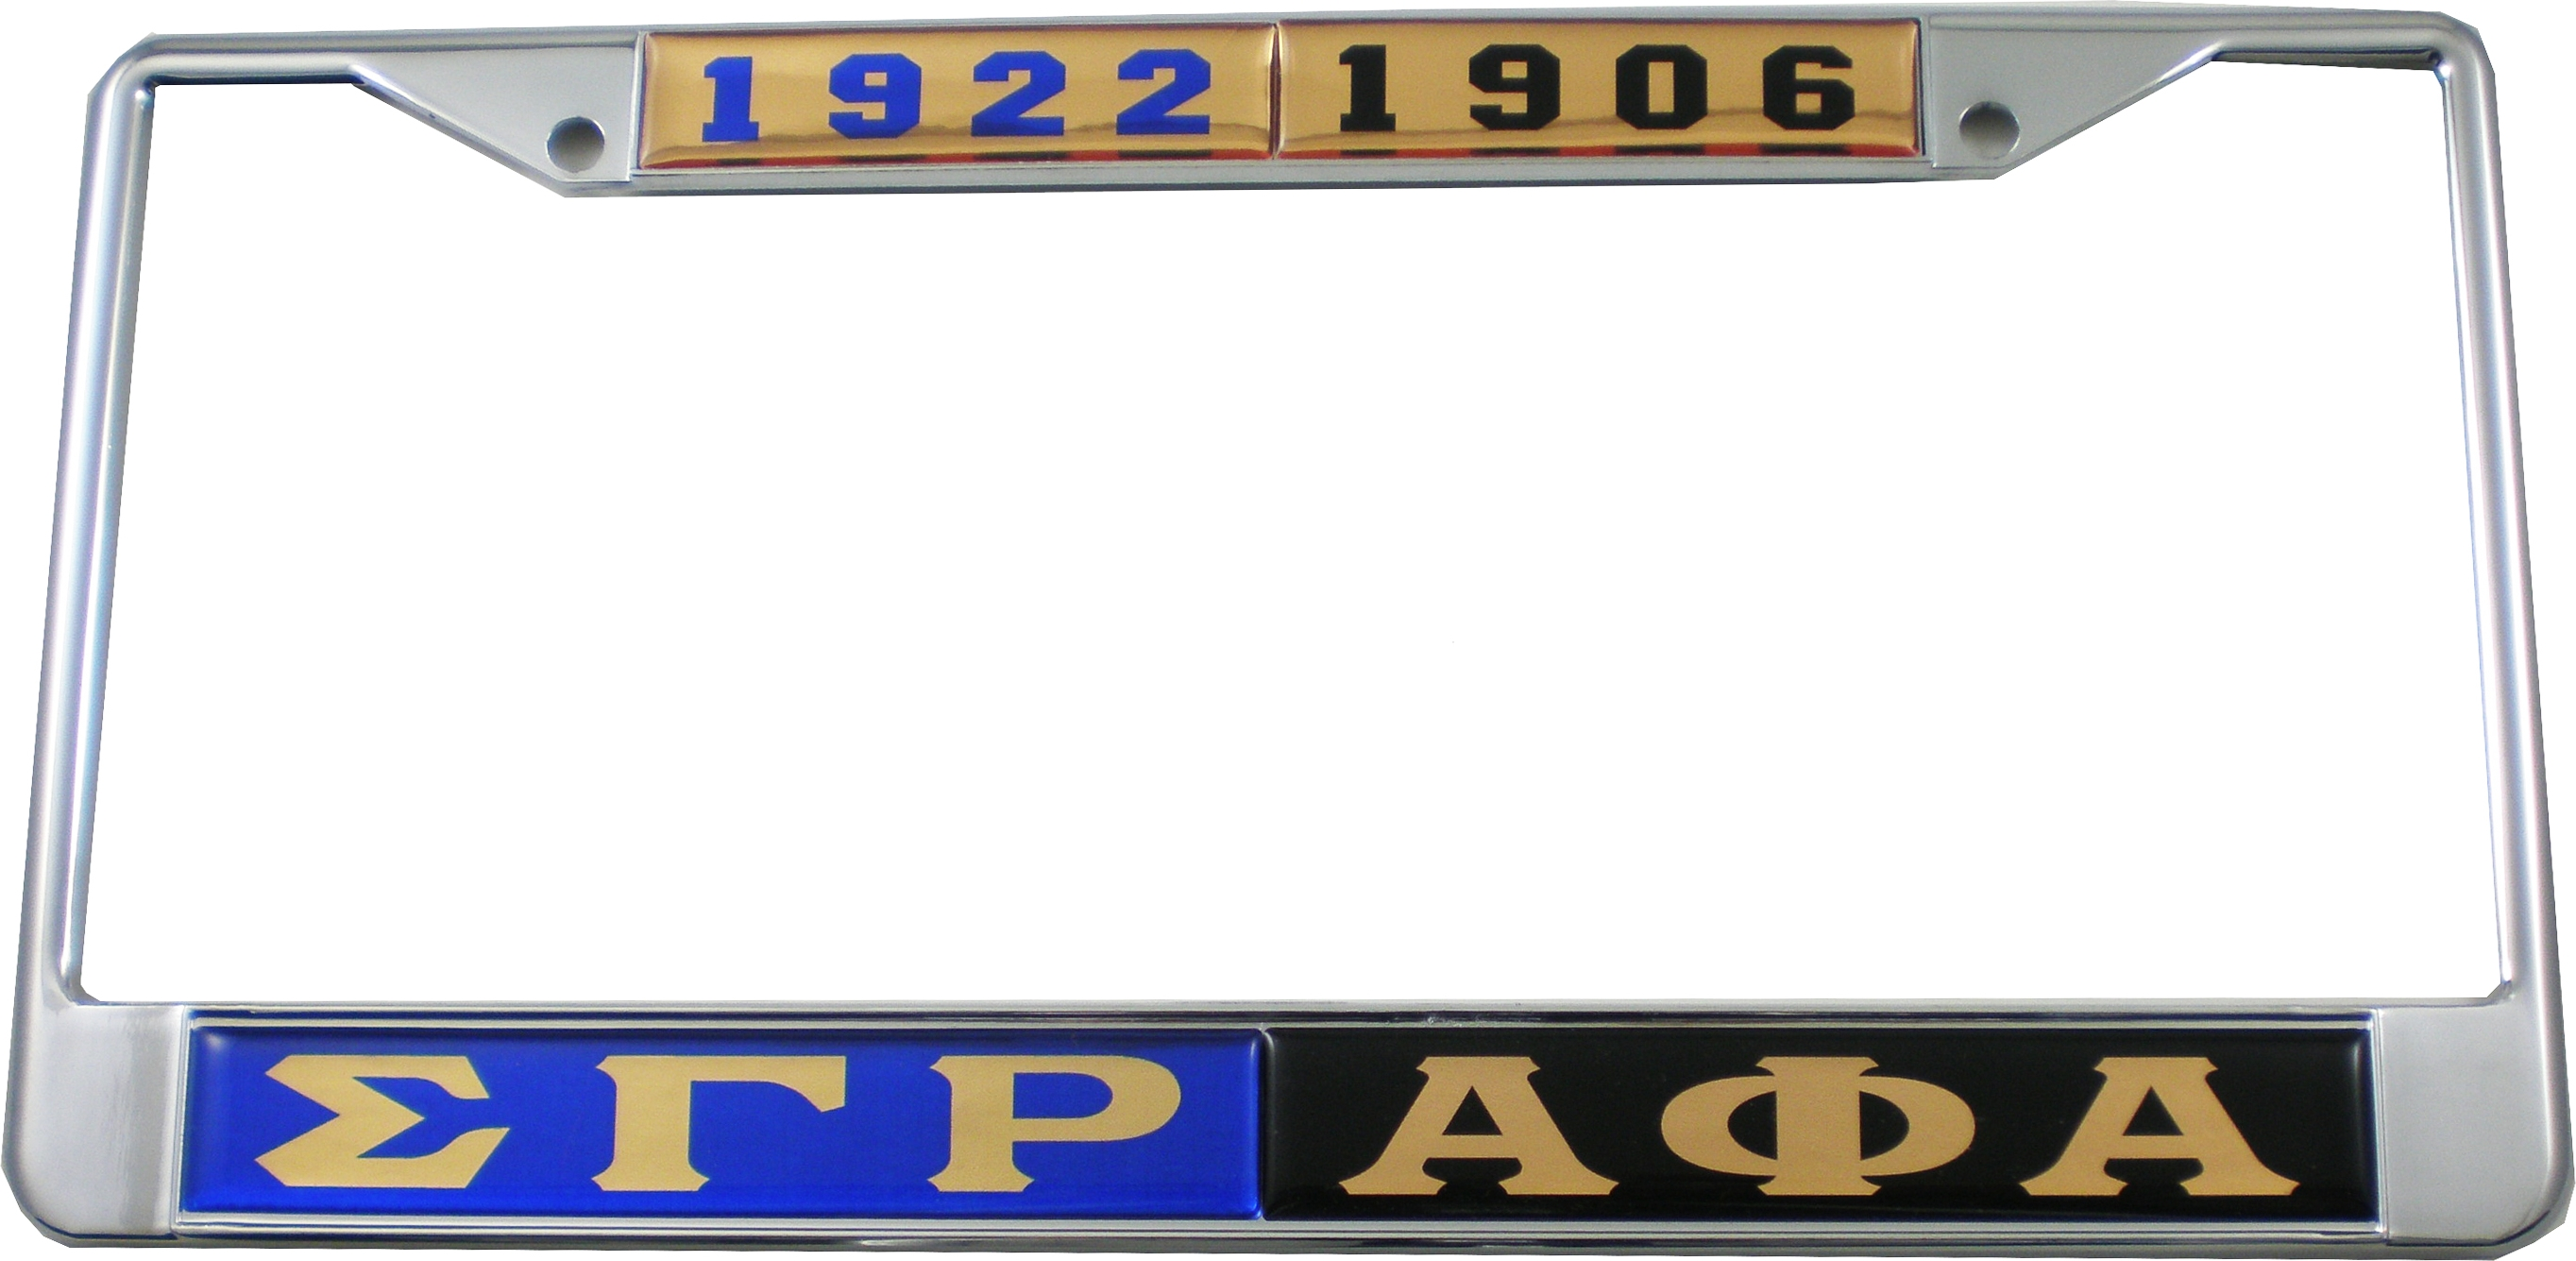 Gamma Split Details About Sigma Gamma Rho Alpha Phi Alpha Split License Plate Frame Blue Black Car